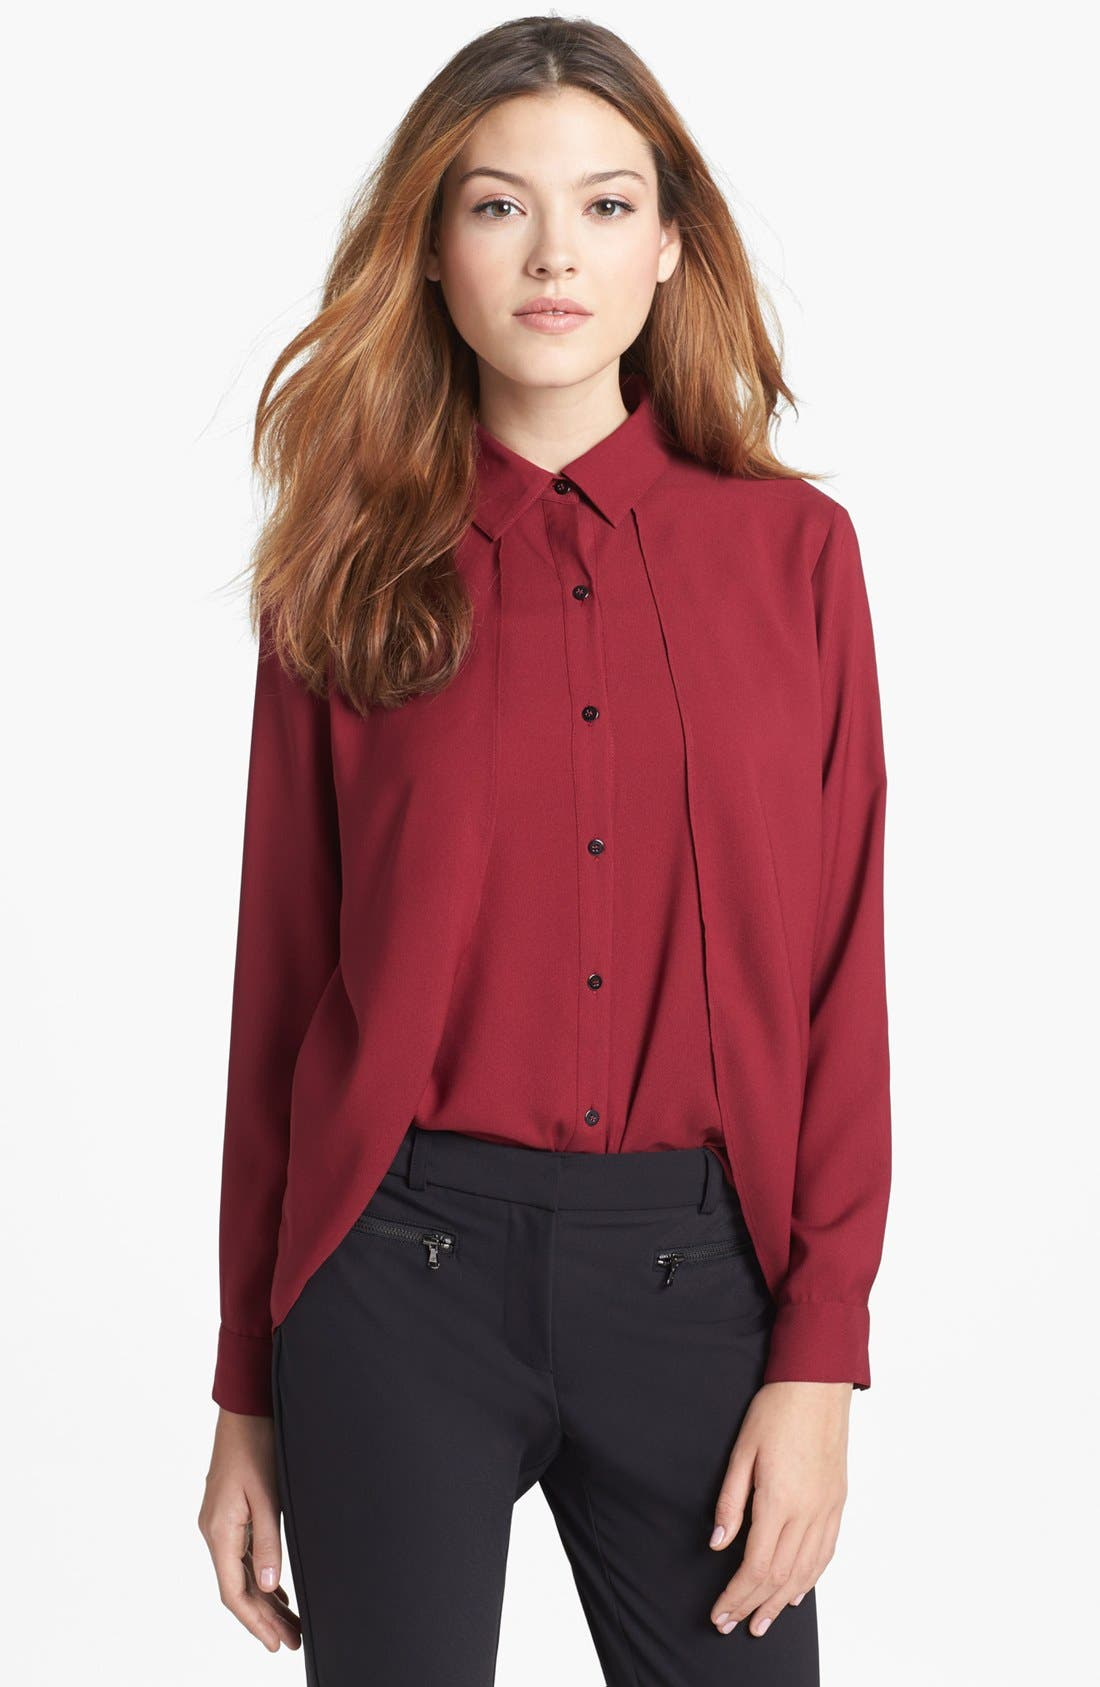 Alternate Image 1 Selected - Kenneth Cole New York 'Filomena' Blouse (Petite)